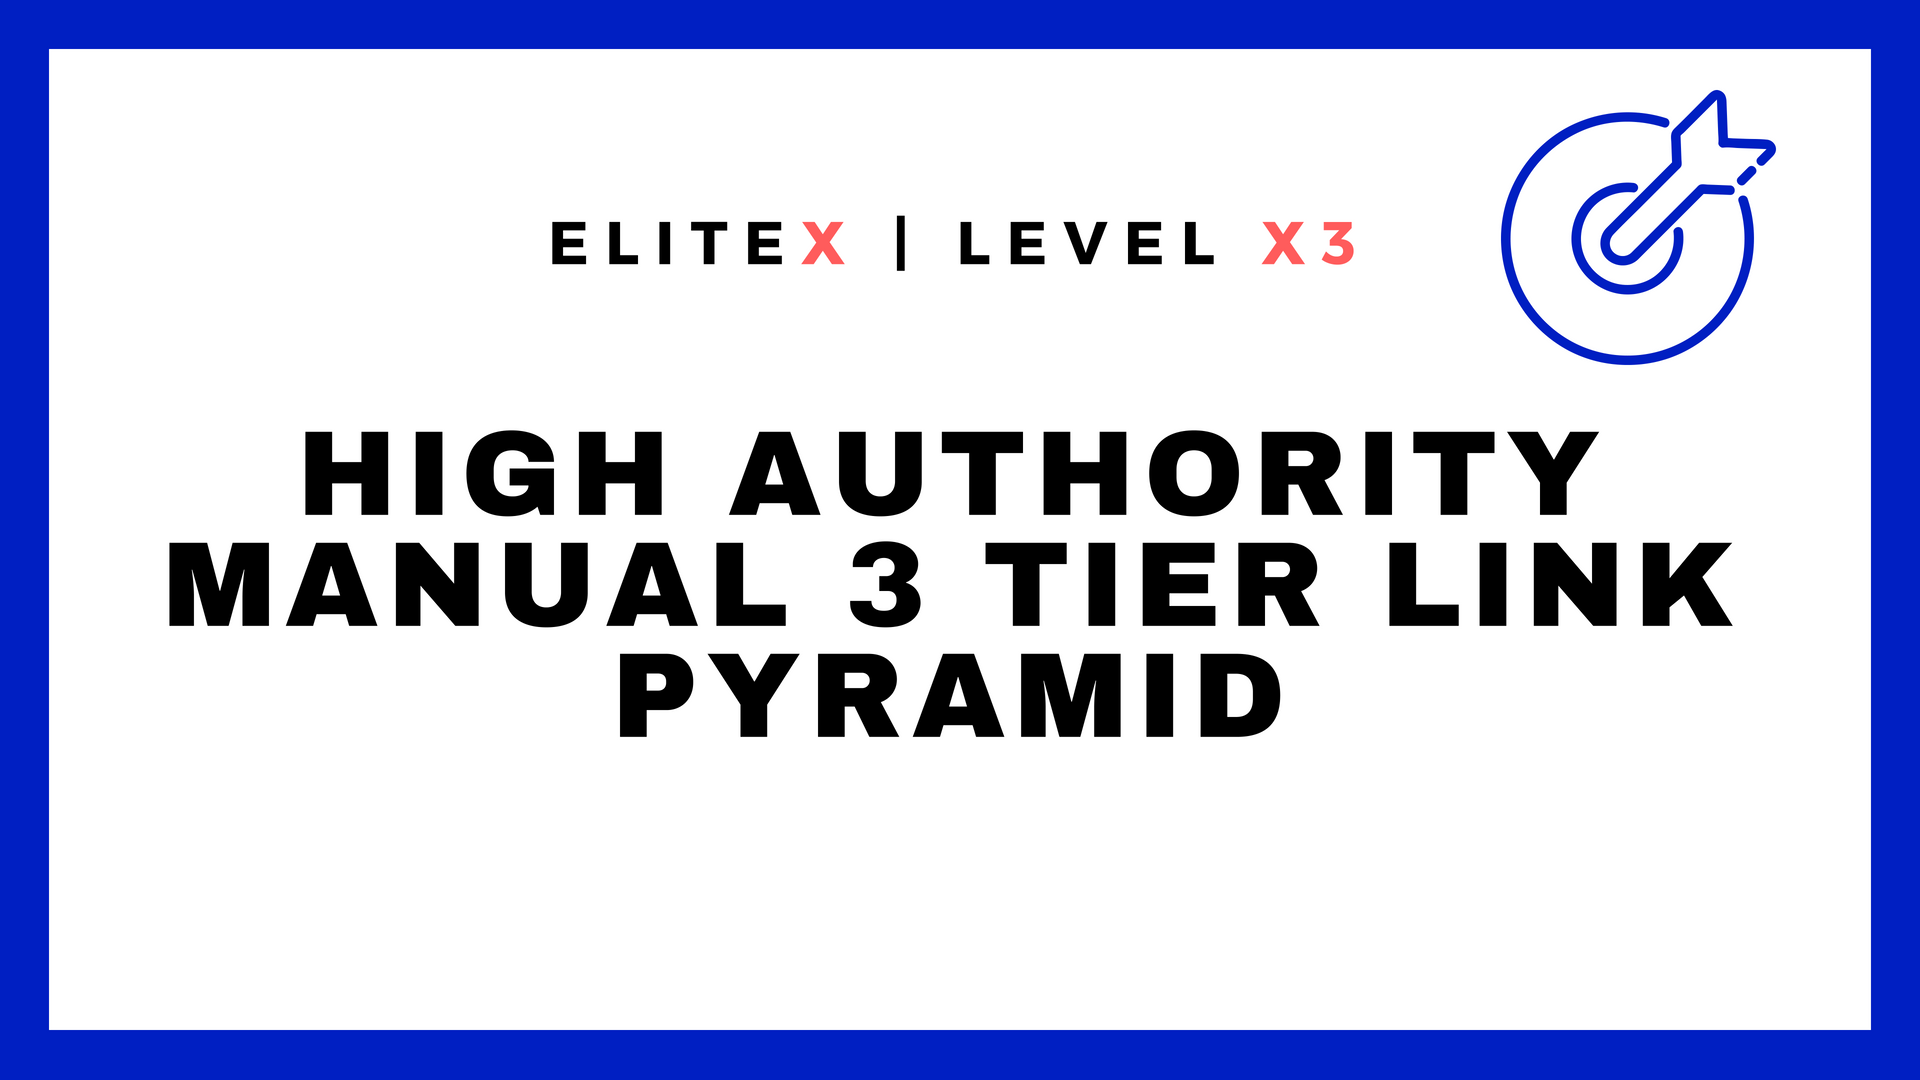 EliteX Google 1st Page Pusher - High Authority Manual 3 Tier Link Pyramid